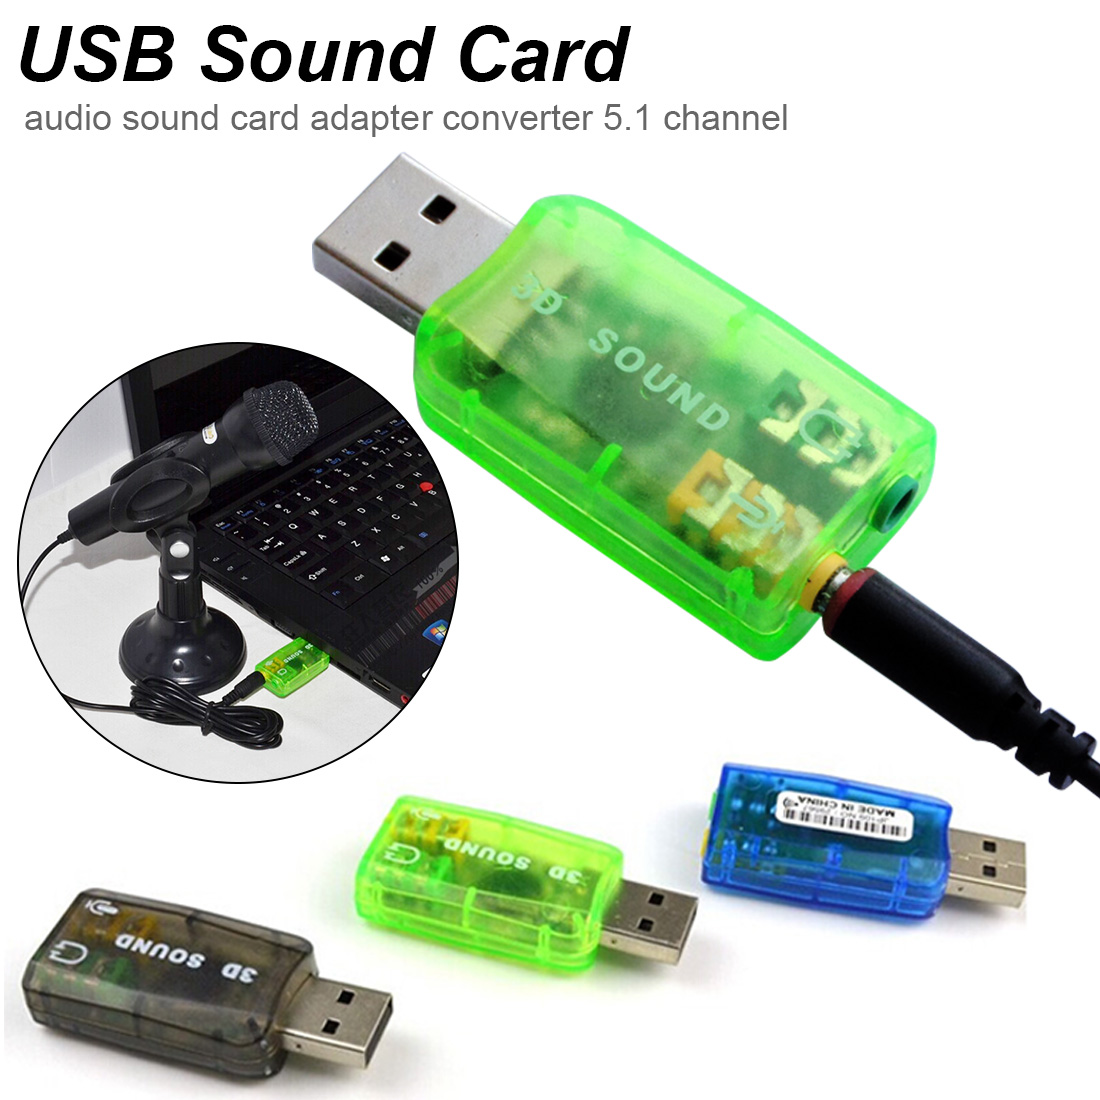 External Usb Sound Card Channel 5.1 7.1 Optical Audio Card Adapter For Pc Computer Laptop Hot New Professional Sophisticated Technologies Computer & Office Sound Cards